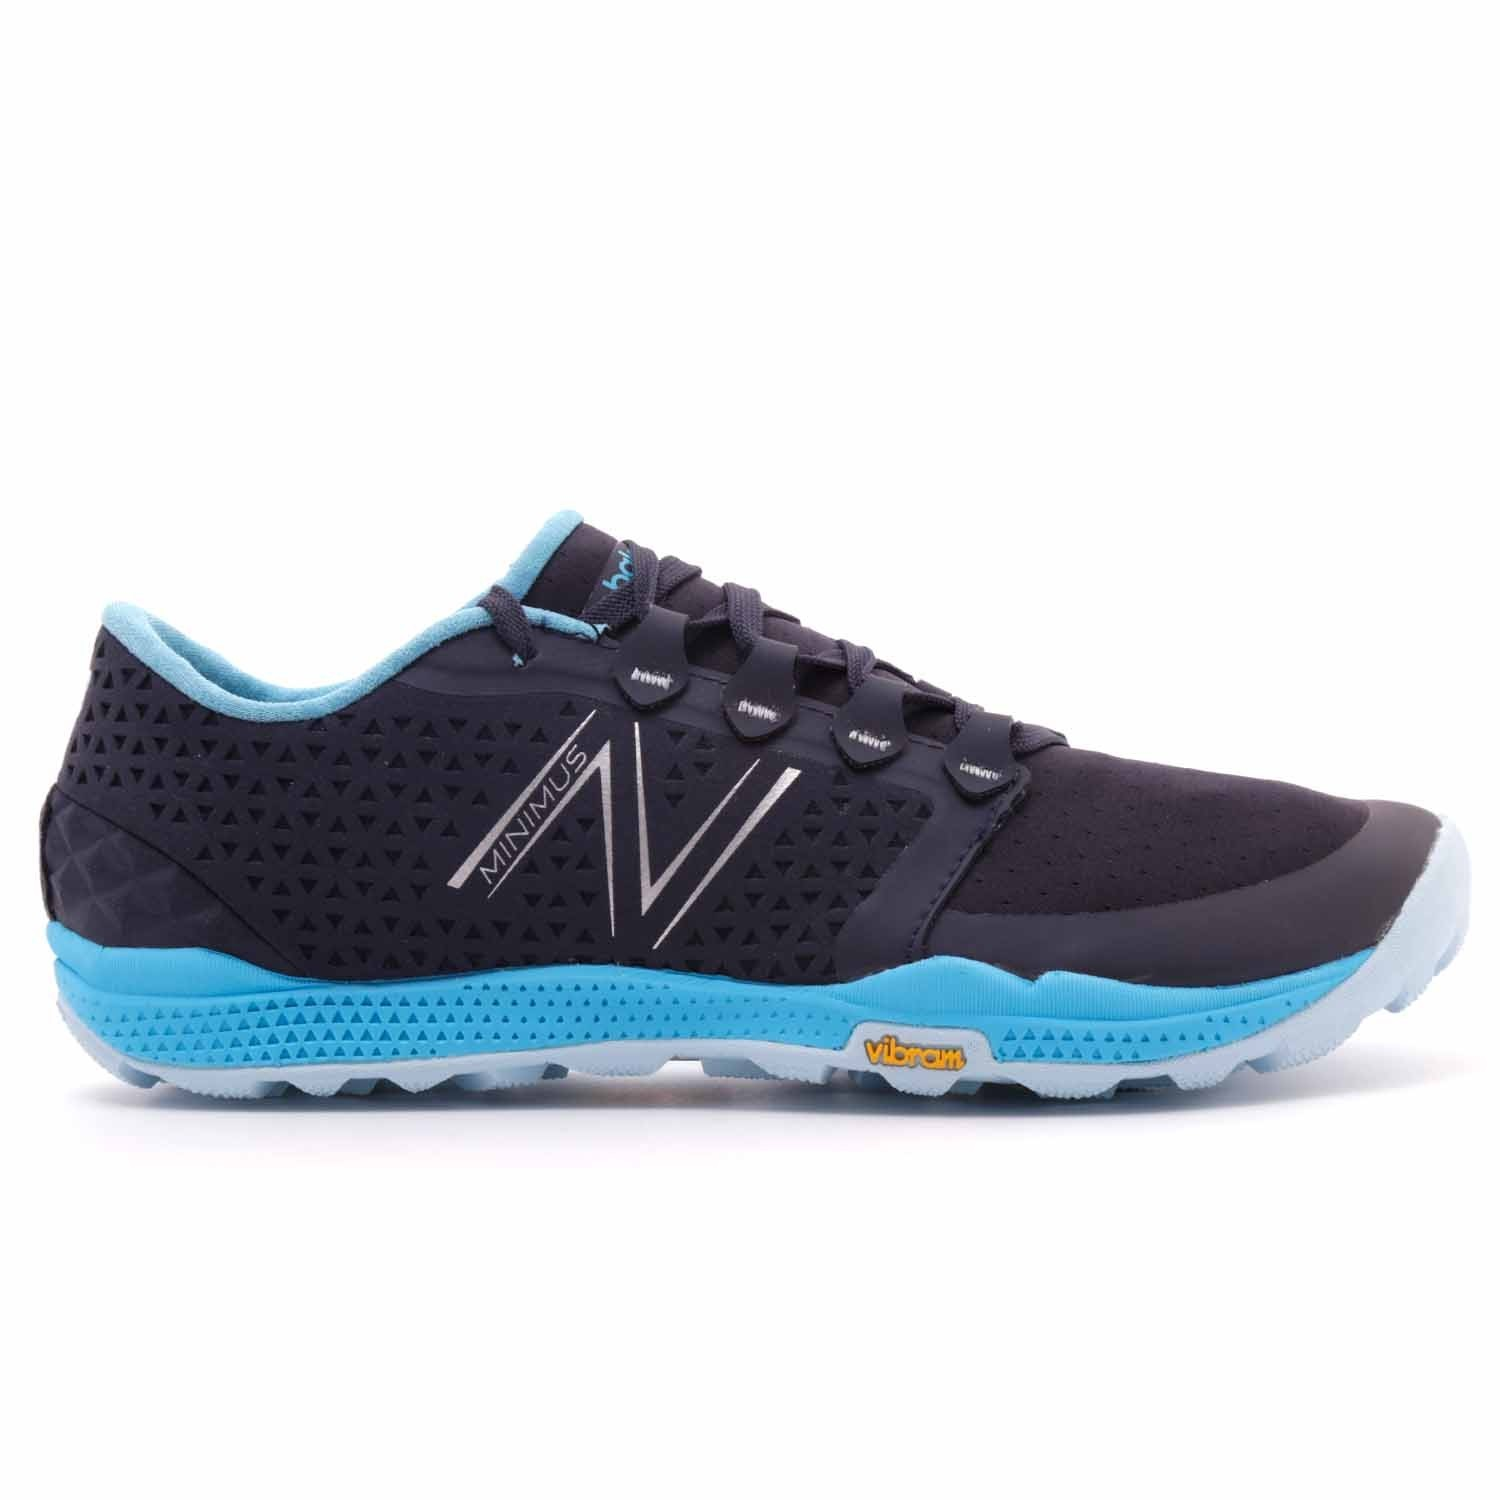 new balance minimus outlet elkr  new balance minimus outlet